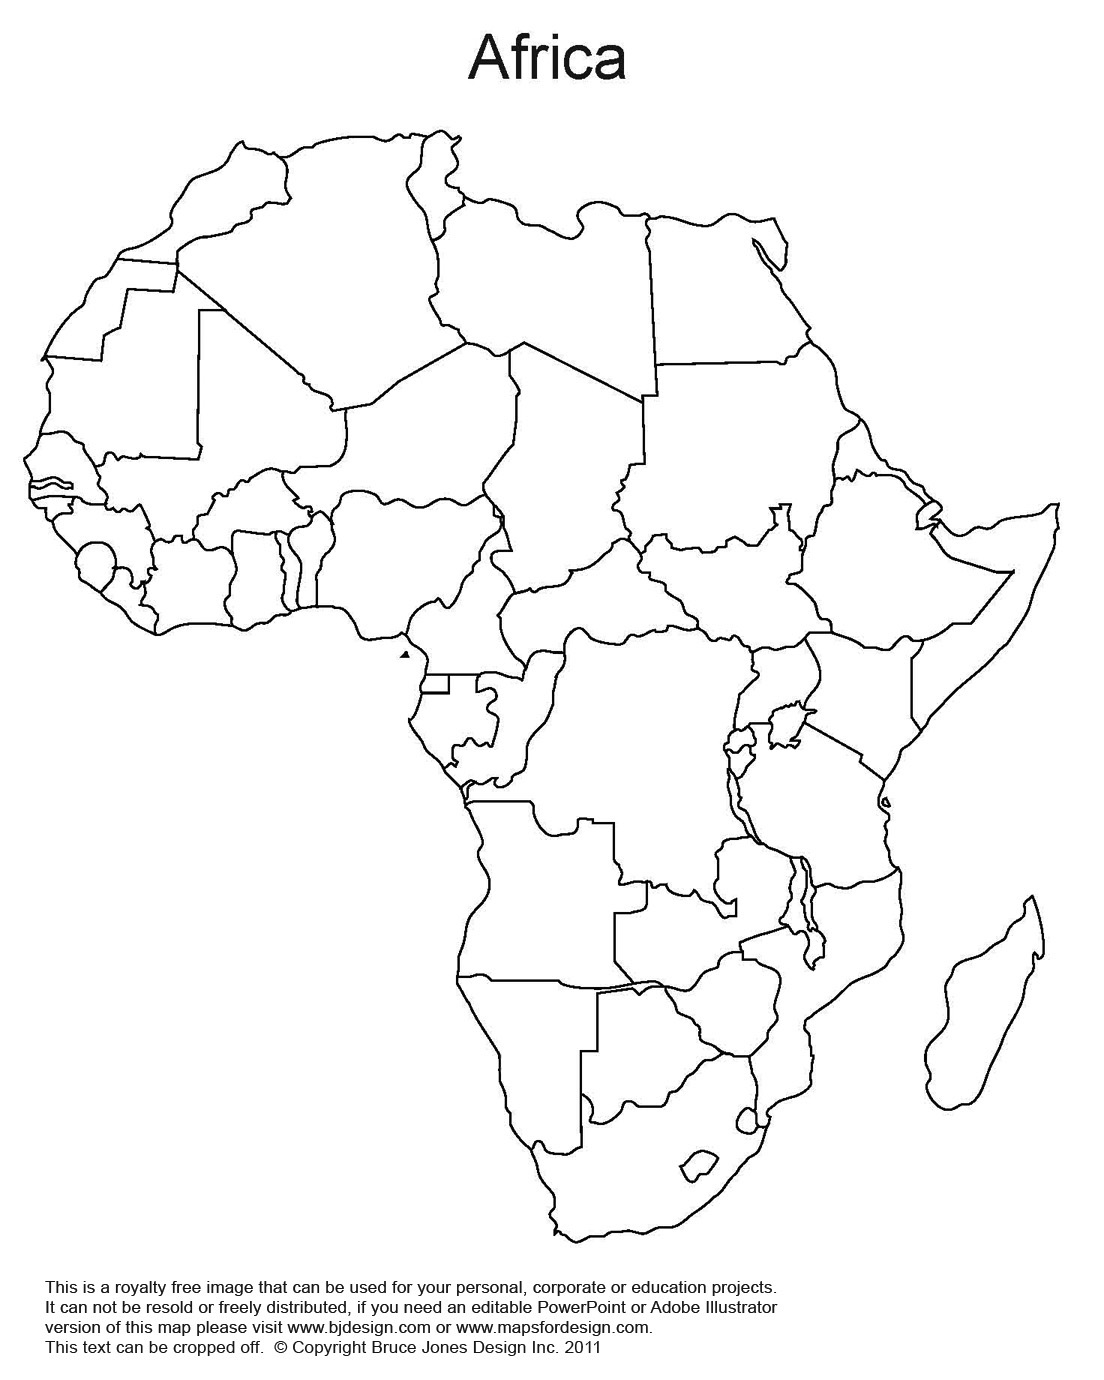 photograph about Printable Maps of Africa called International Area Printable, Blank Maps Royalty Absolutely free, jpg